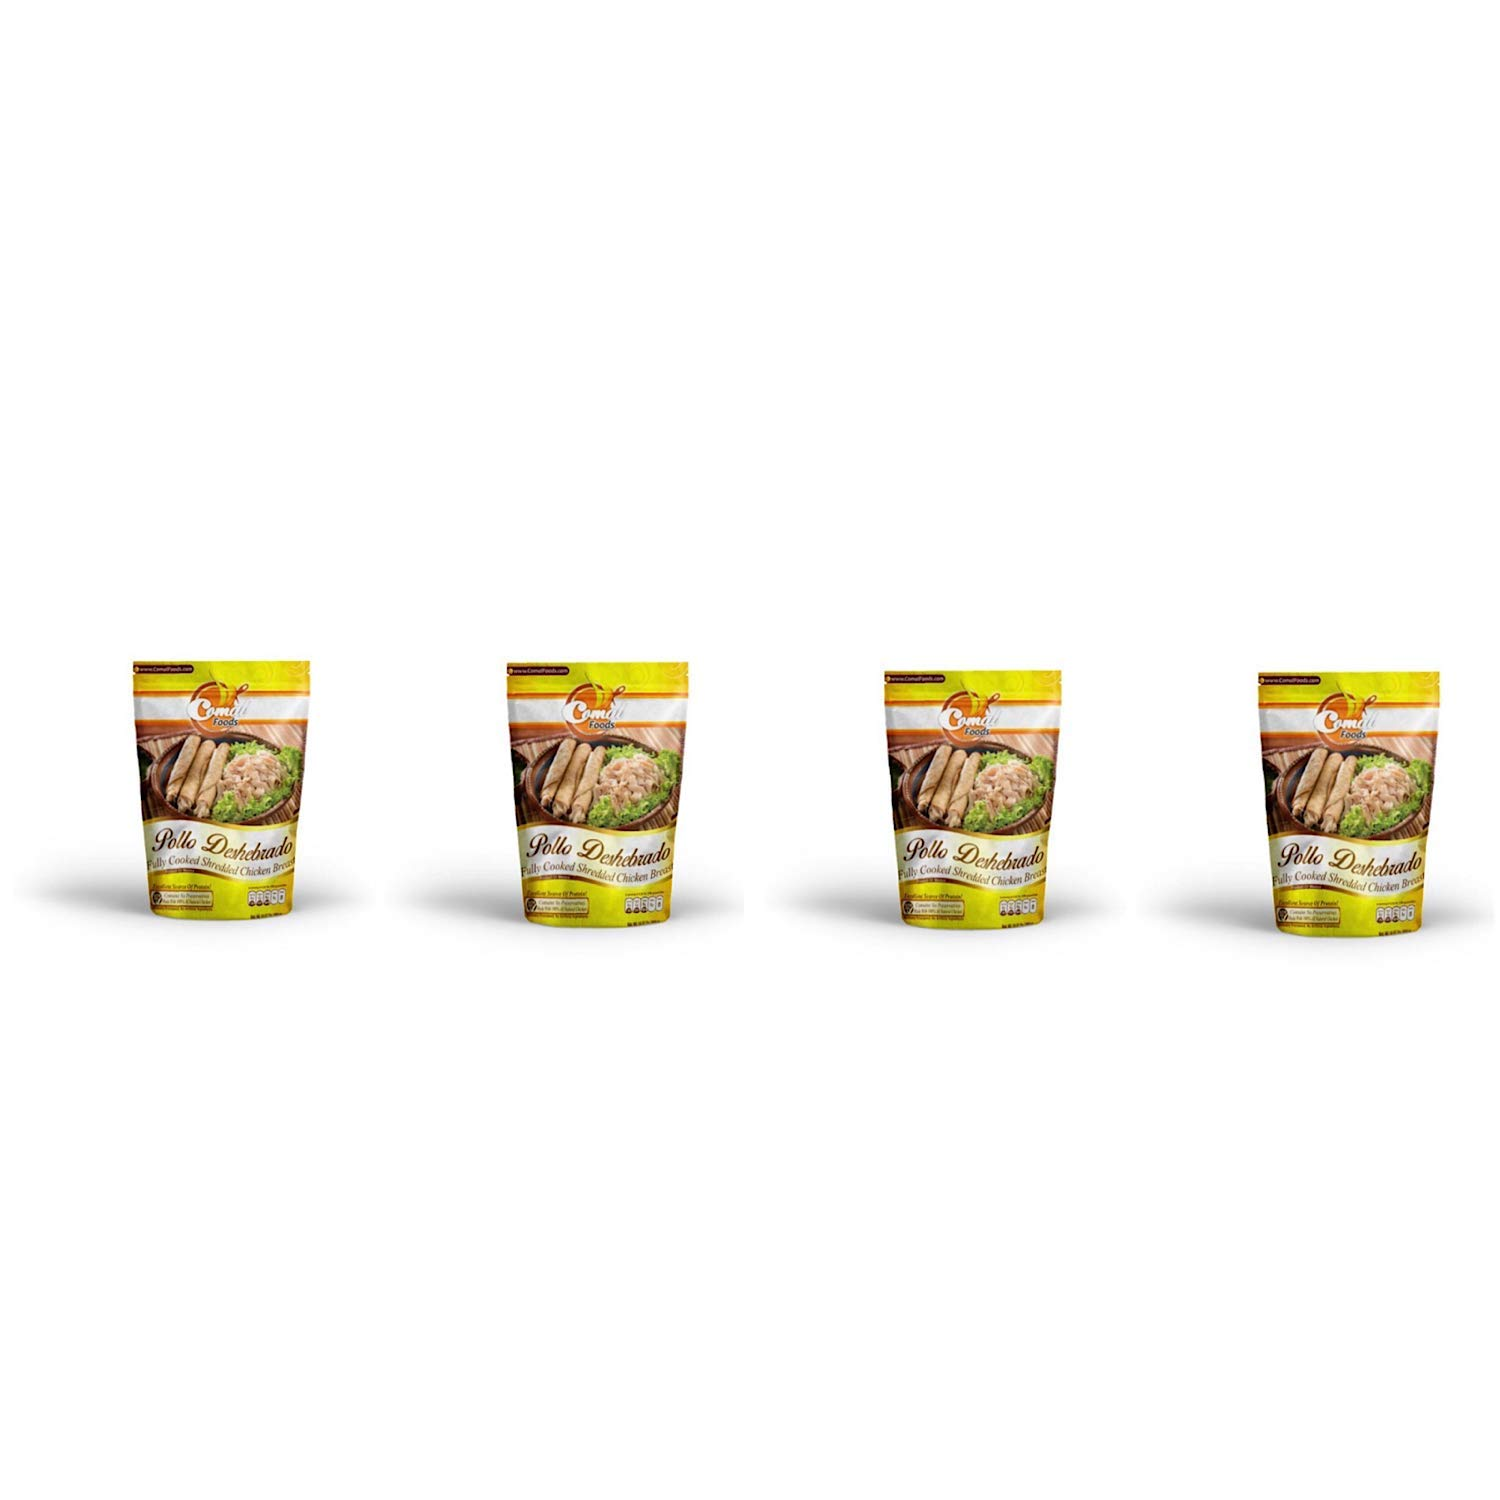 Comal Traditional Foods |Tasty and Flavorful Chicken, beef and pork | Ready-to-eat | Gluten Free || Mexican food (Shredded Chicken, Pack of 4)